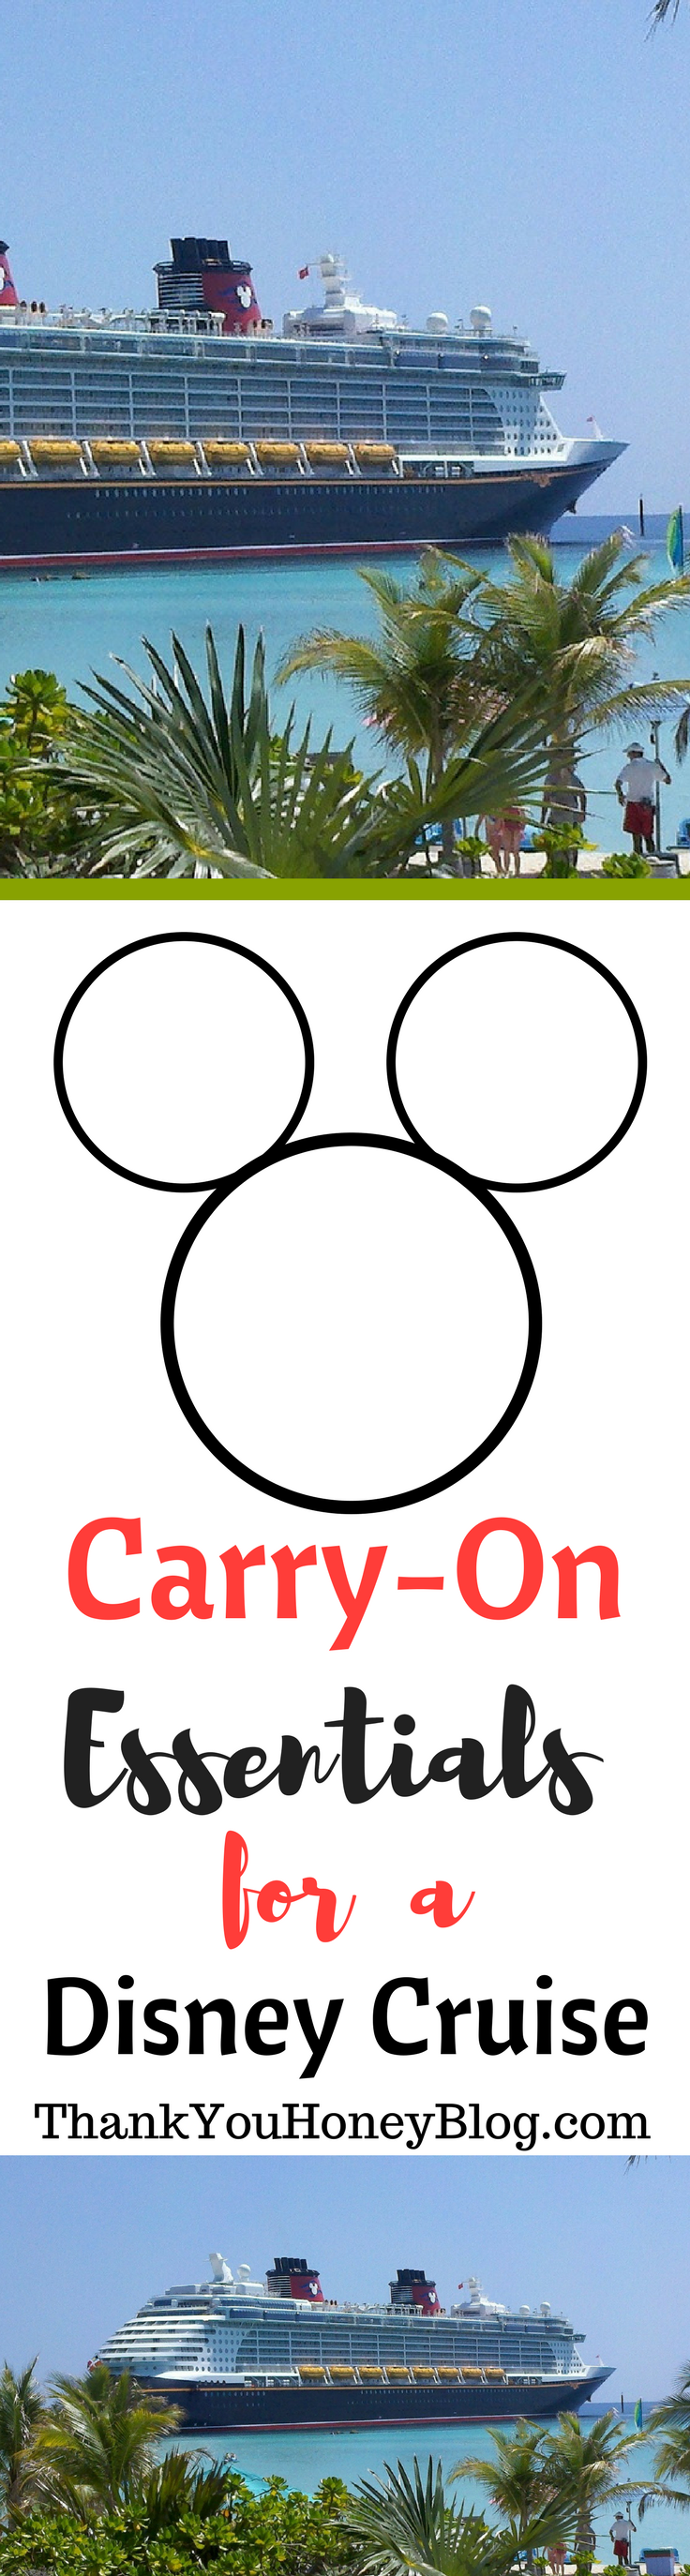 Carry- On Essentials for a Disney Cruise